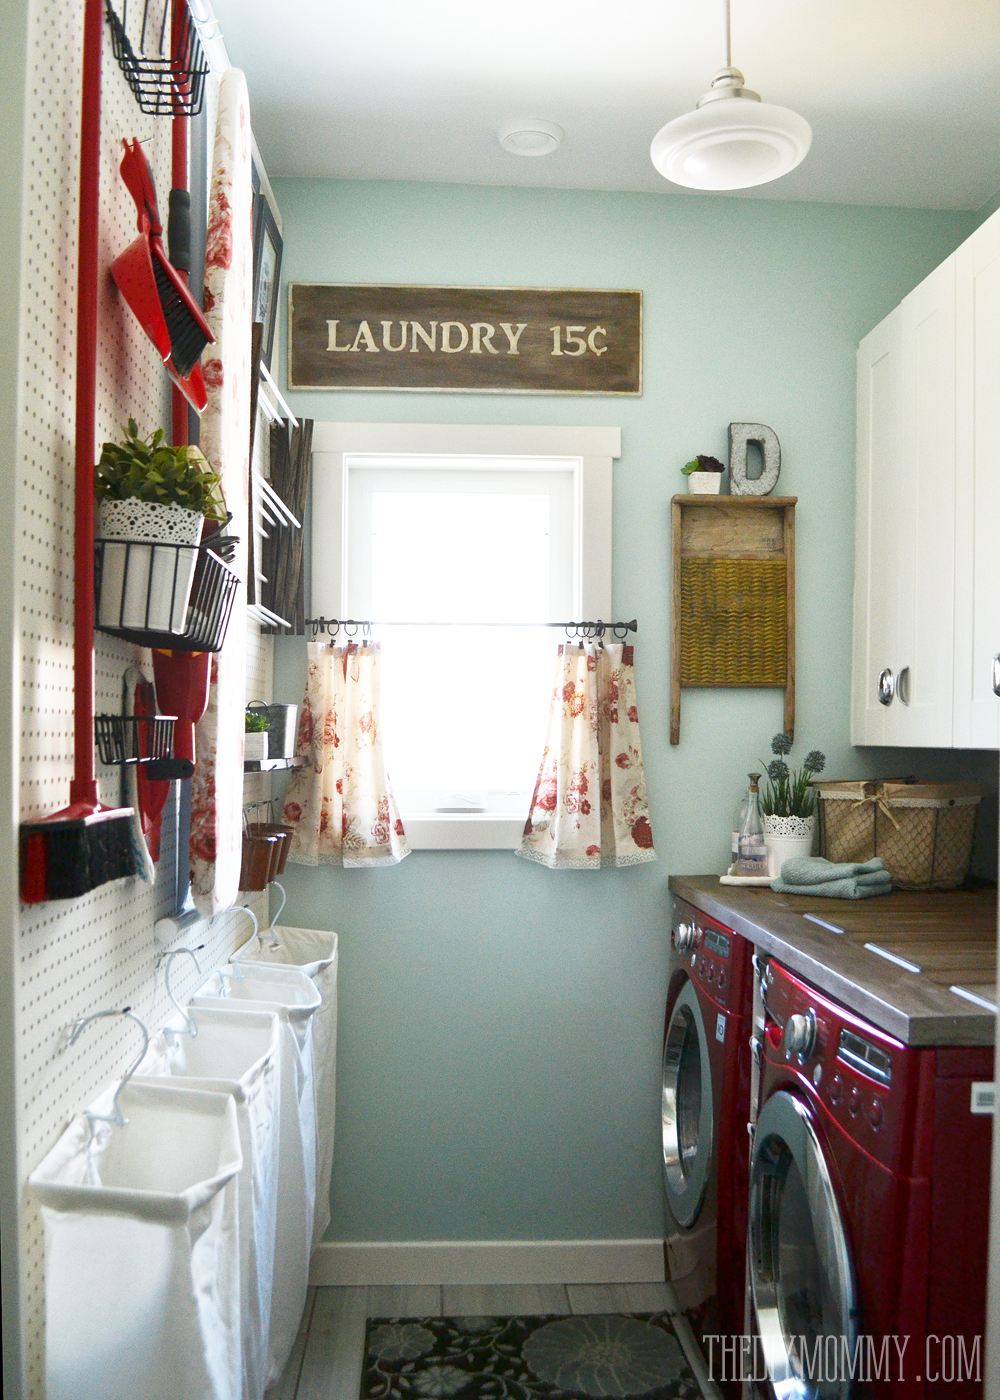 Vintage-Red-Aqua-Pegboard-Laundry-Room-Design-Ideas-2 Front House Design With Columns on front house pergola design, front house color design, small front garden design, brick house front porch design, front house deck plans, stone columns design, front house patio design, small house front design, front house lighting design, front house wall, trim front porch design, front pillar design, craftsman style homes design, front house design philippines, house pillars styles and design, front deck designs for mobile homes, white house design, manufactured home front porch design, front entrance portico design, double gable front house design,